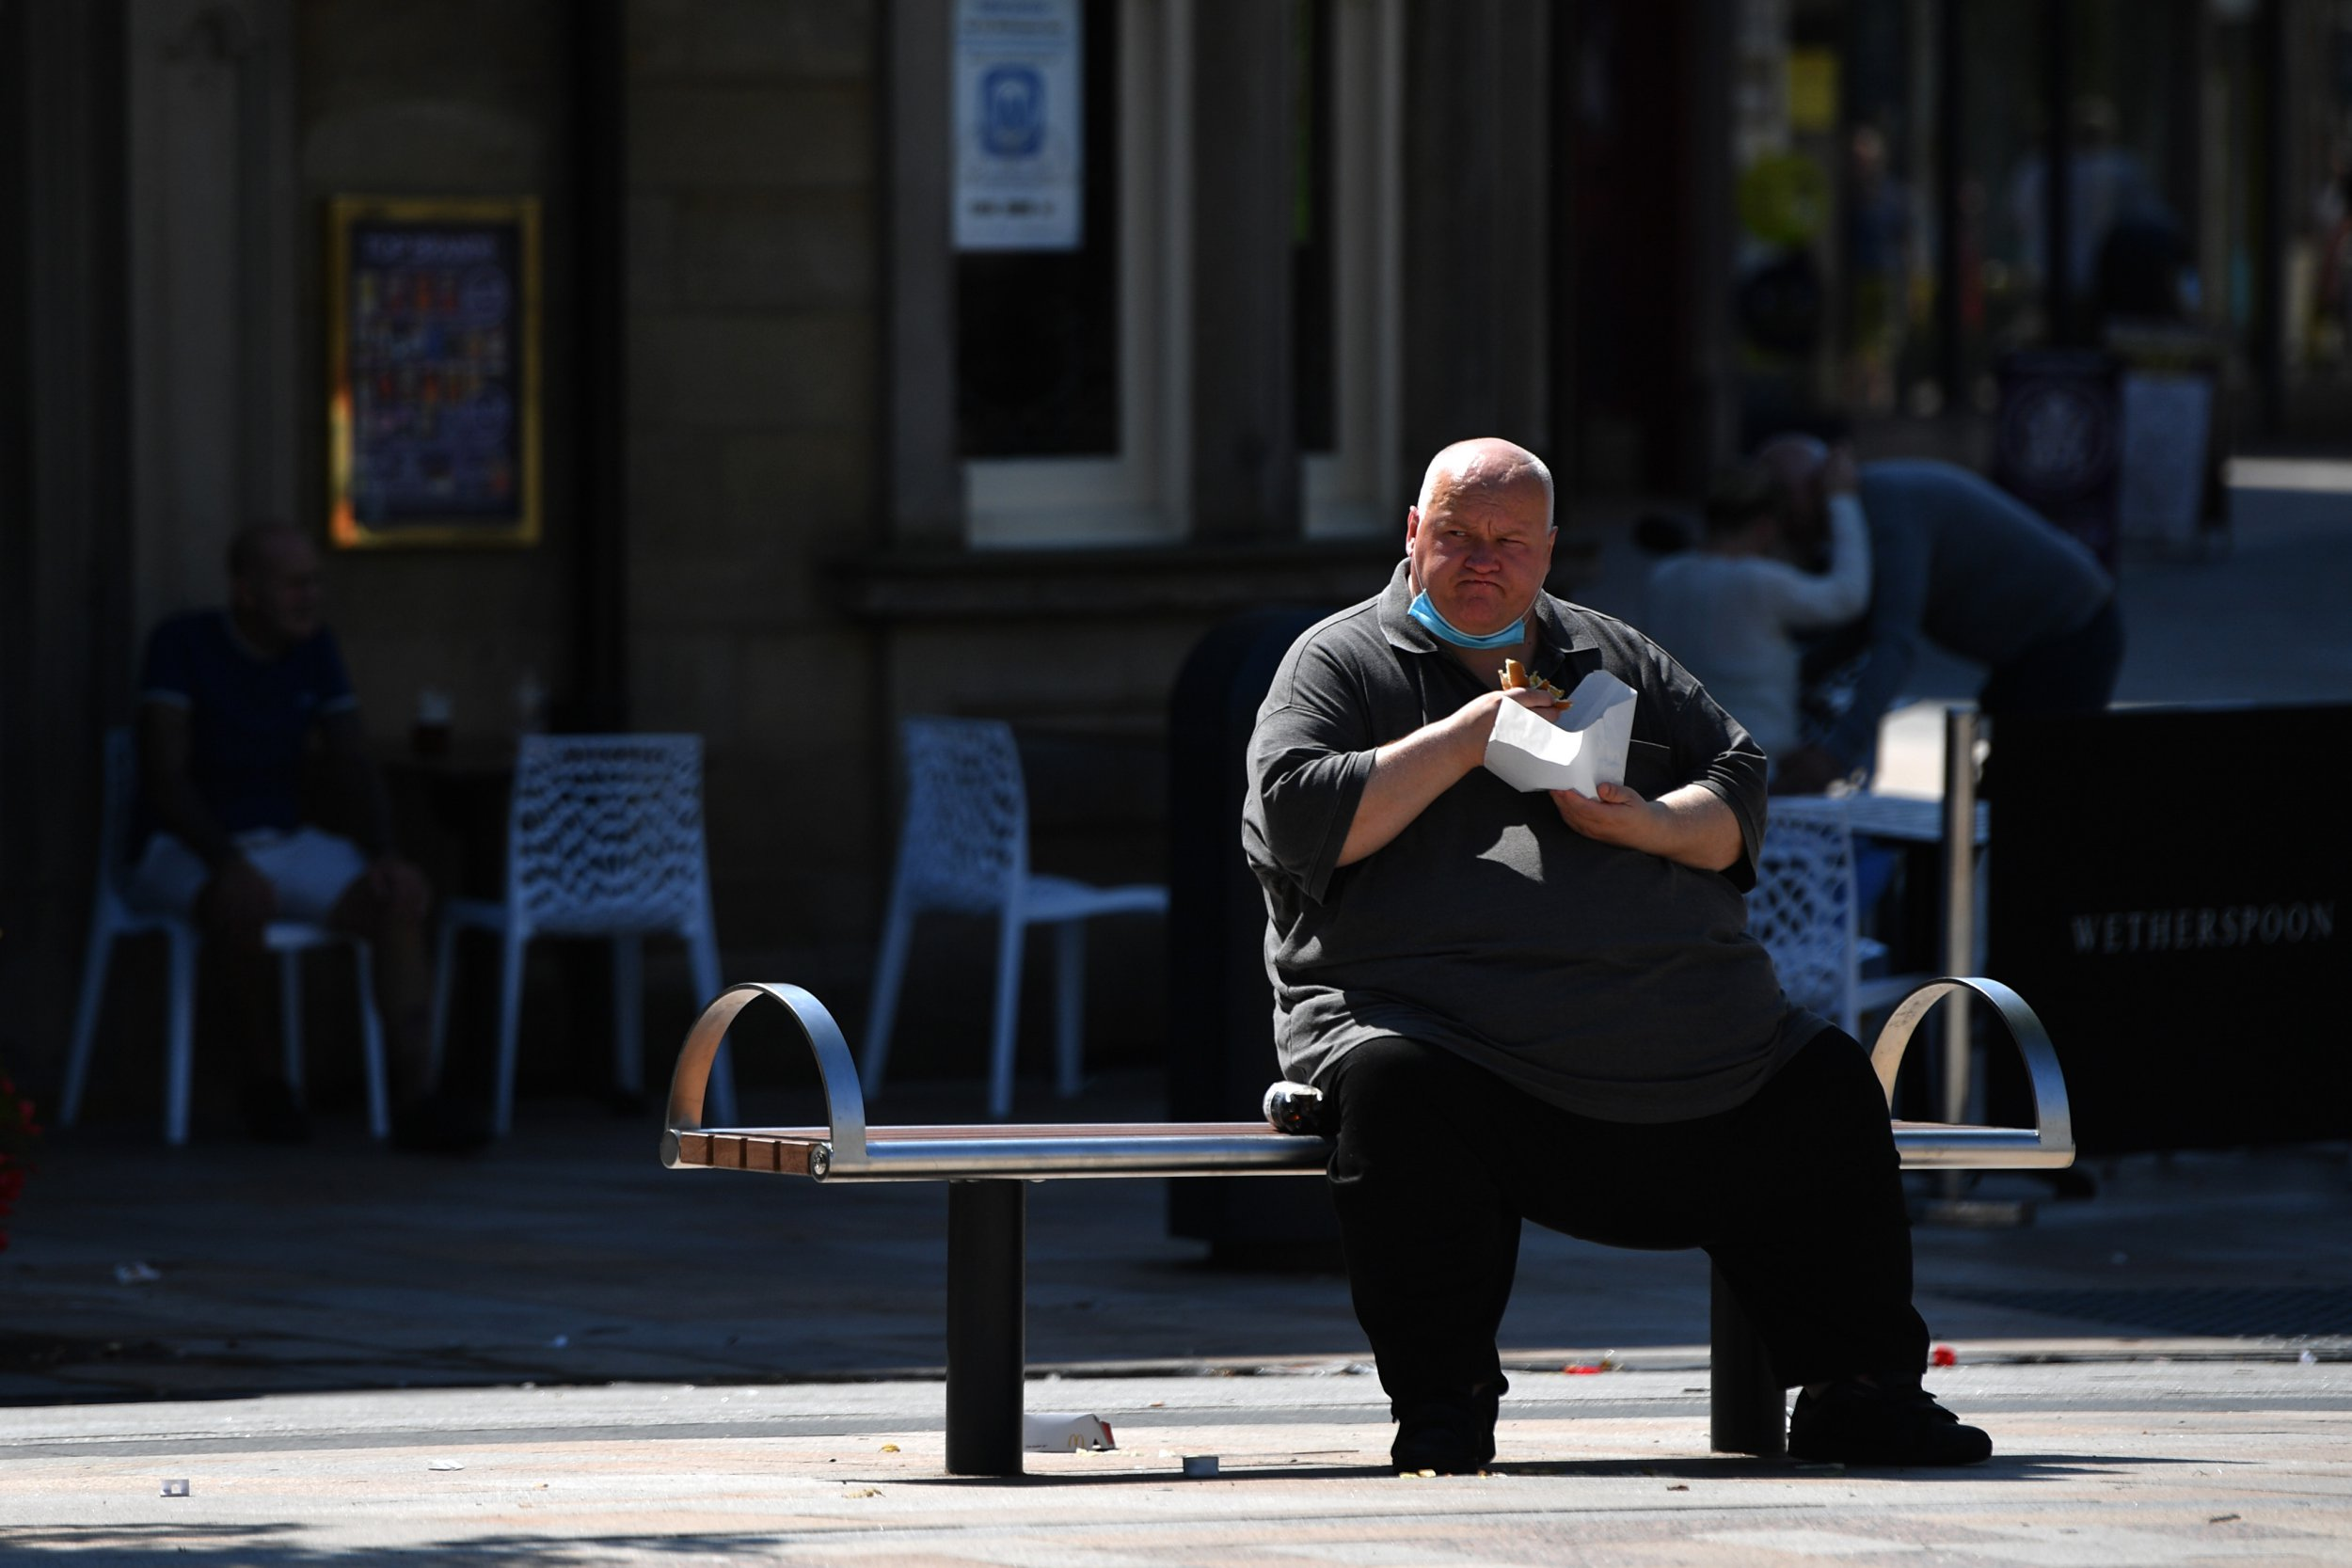 Overweight volunteers wanted to test if brain training app can help you lose weight